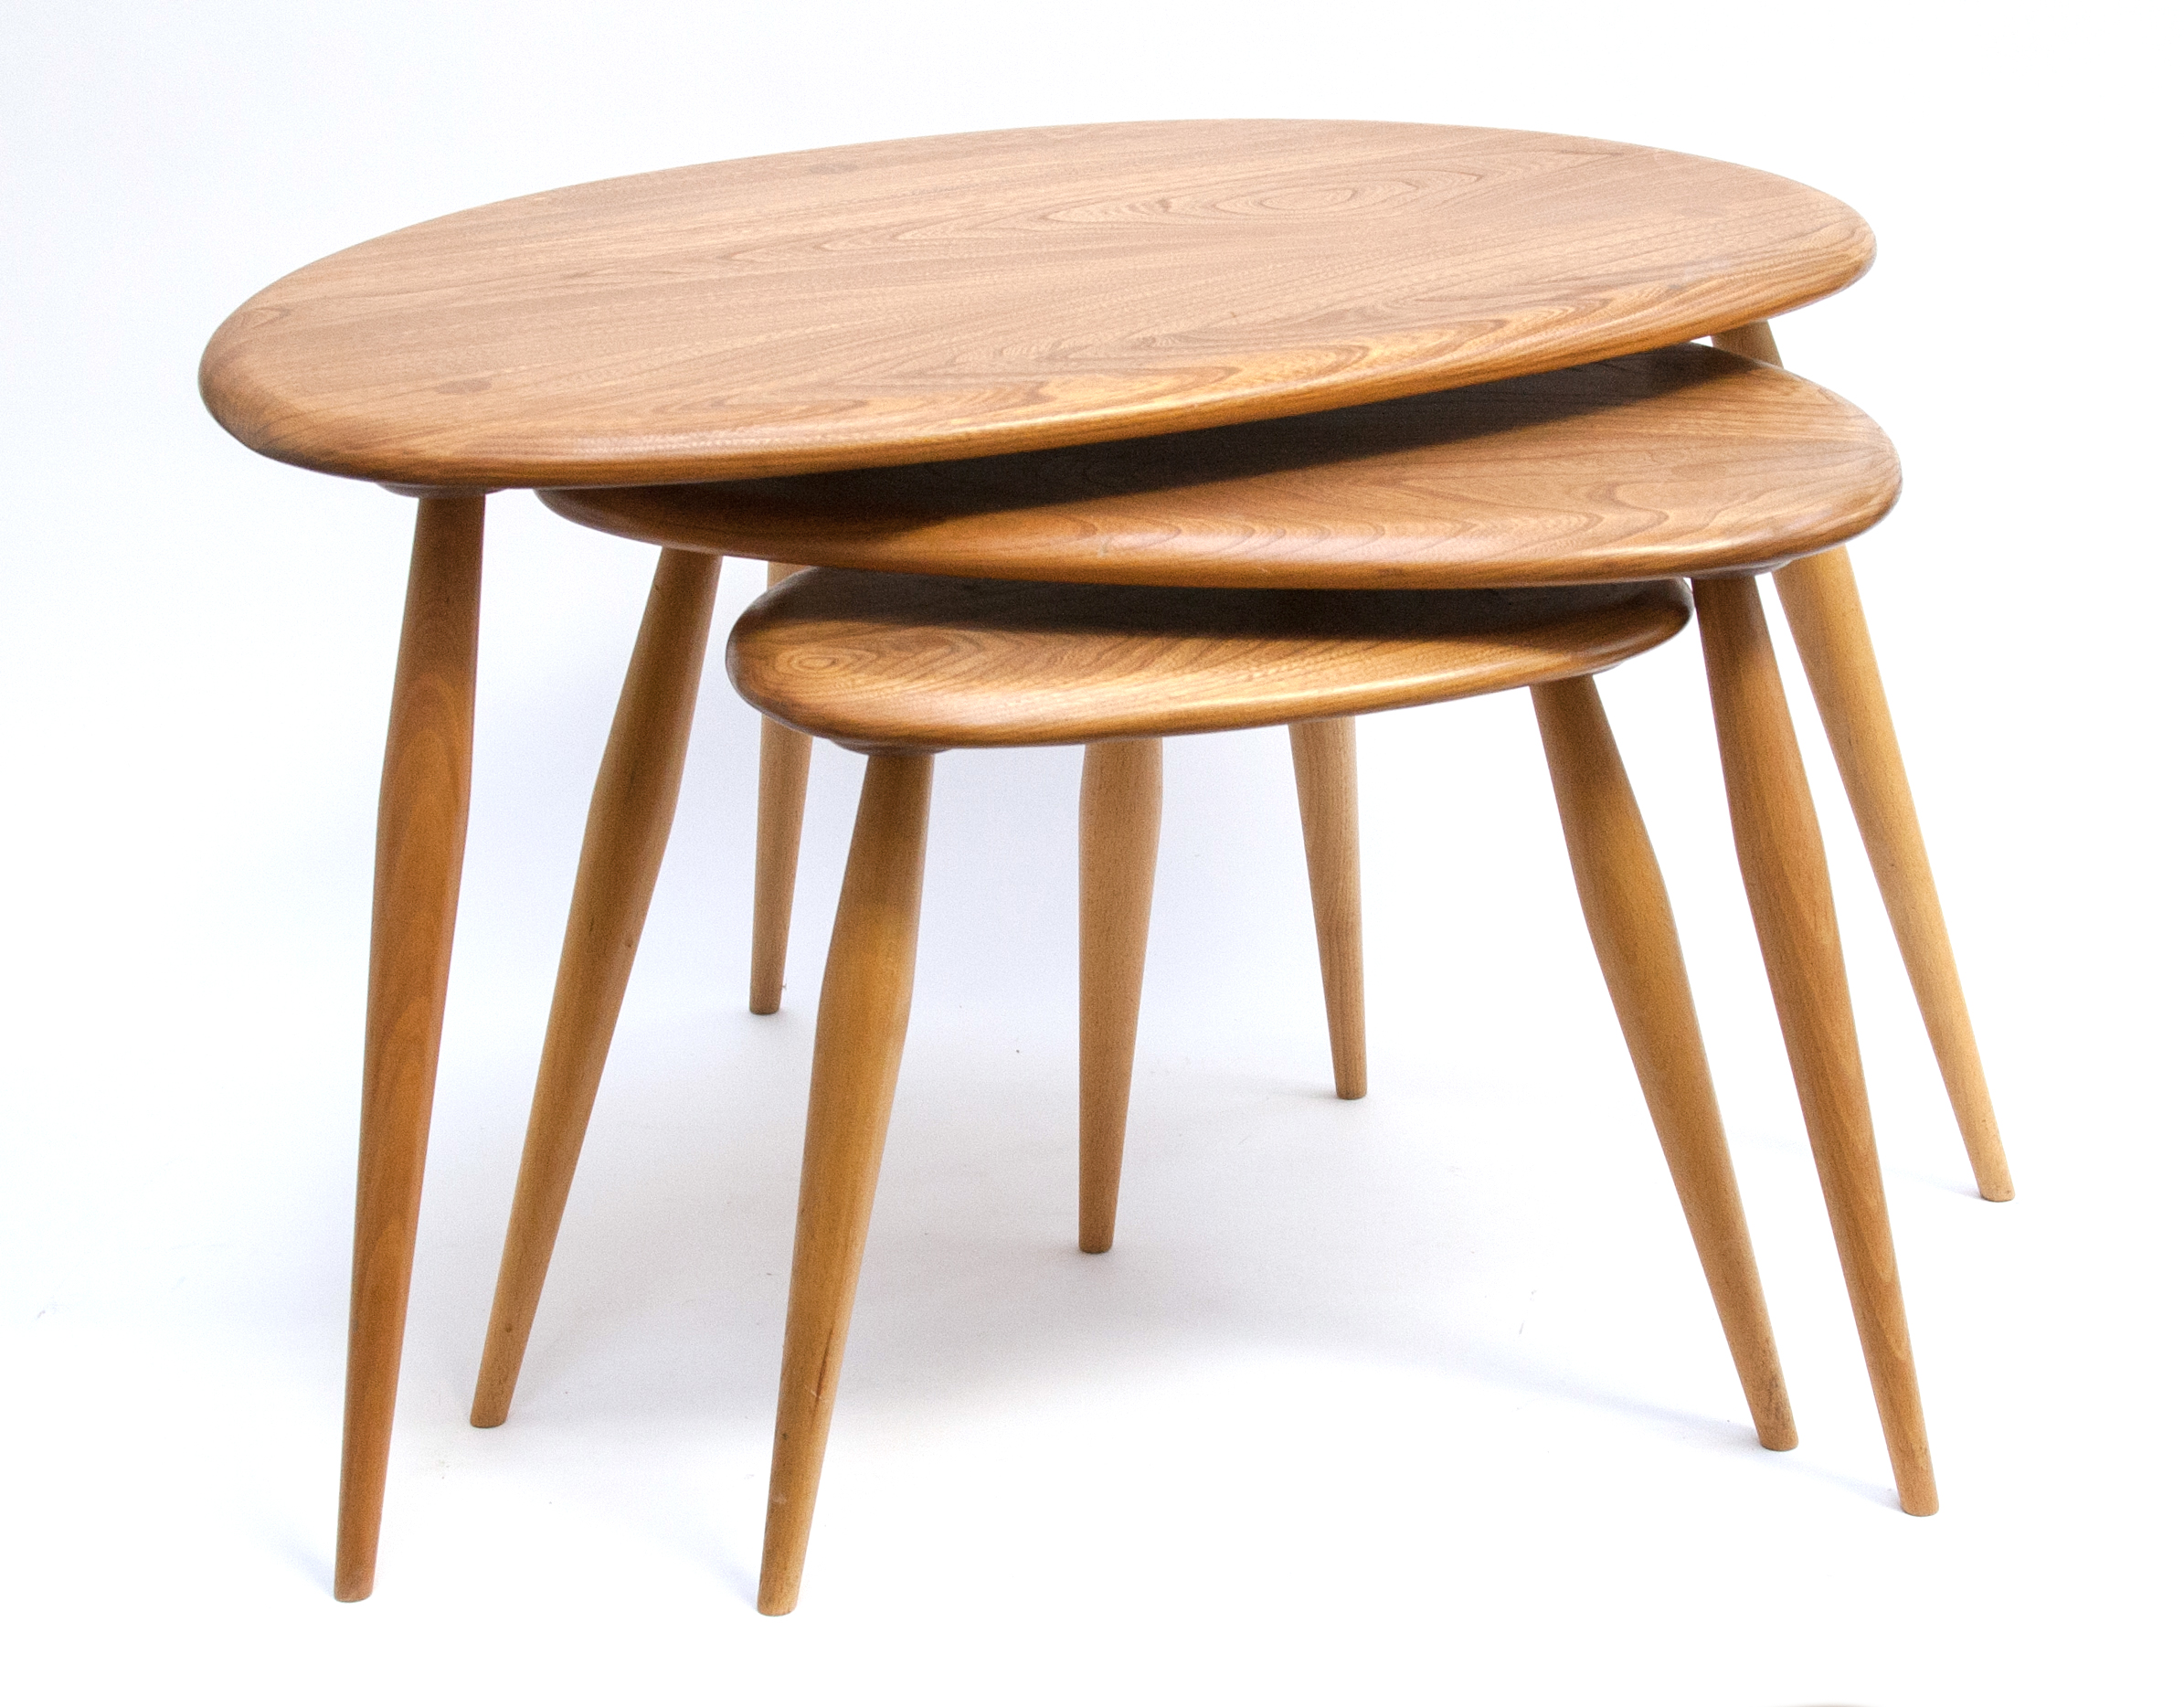 A nest of Ercol pebble tables, light elm and ash, 40cm high, 65cm wide